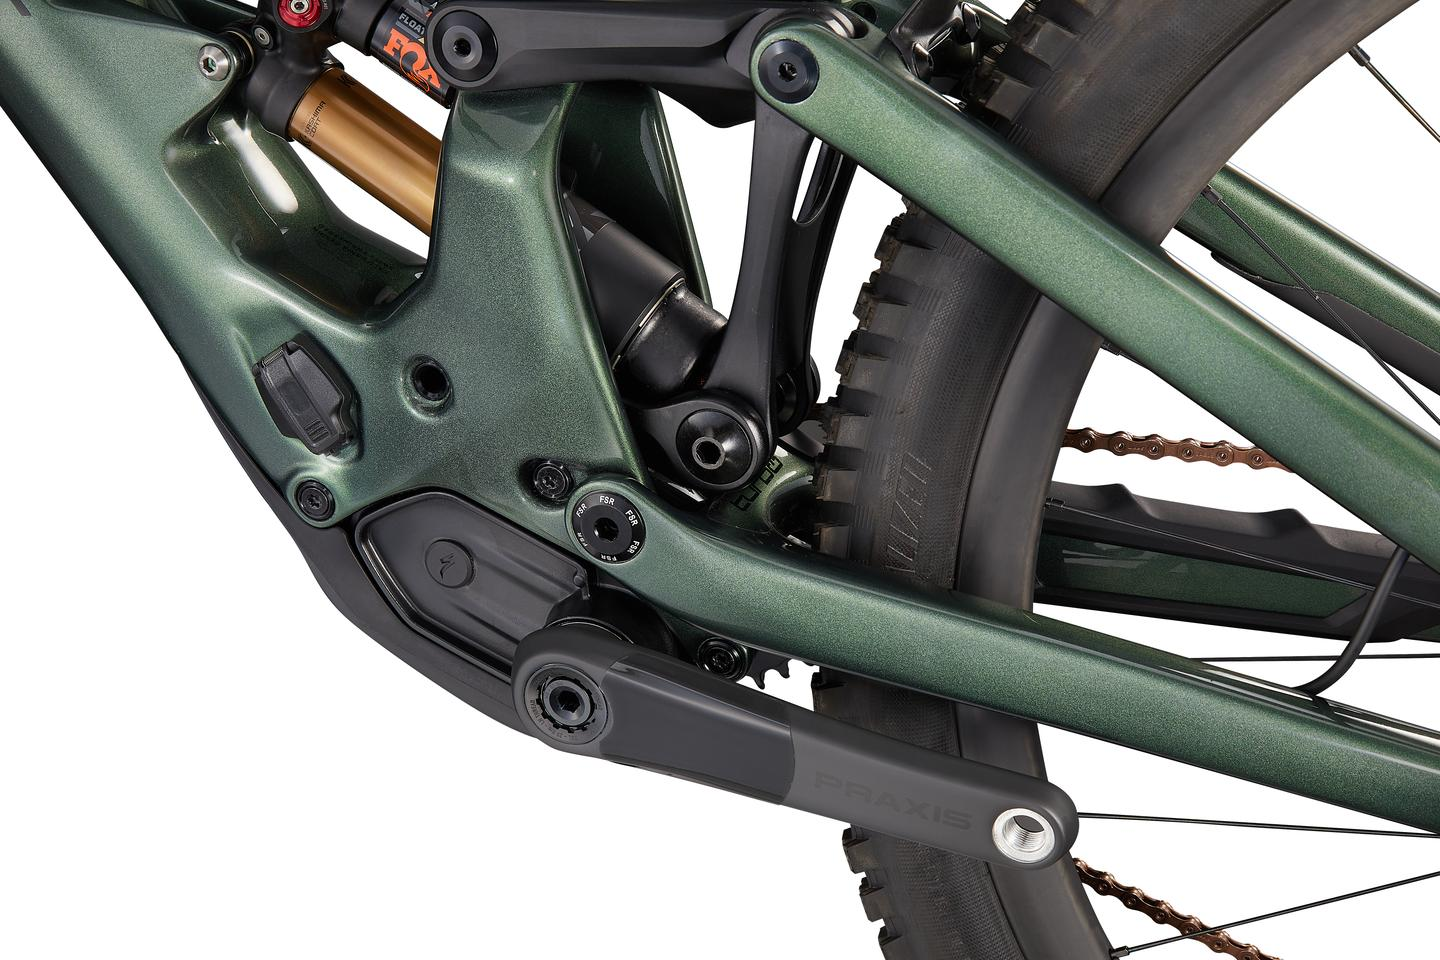 The rear suspension setup includes a six bar linkage system